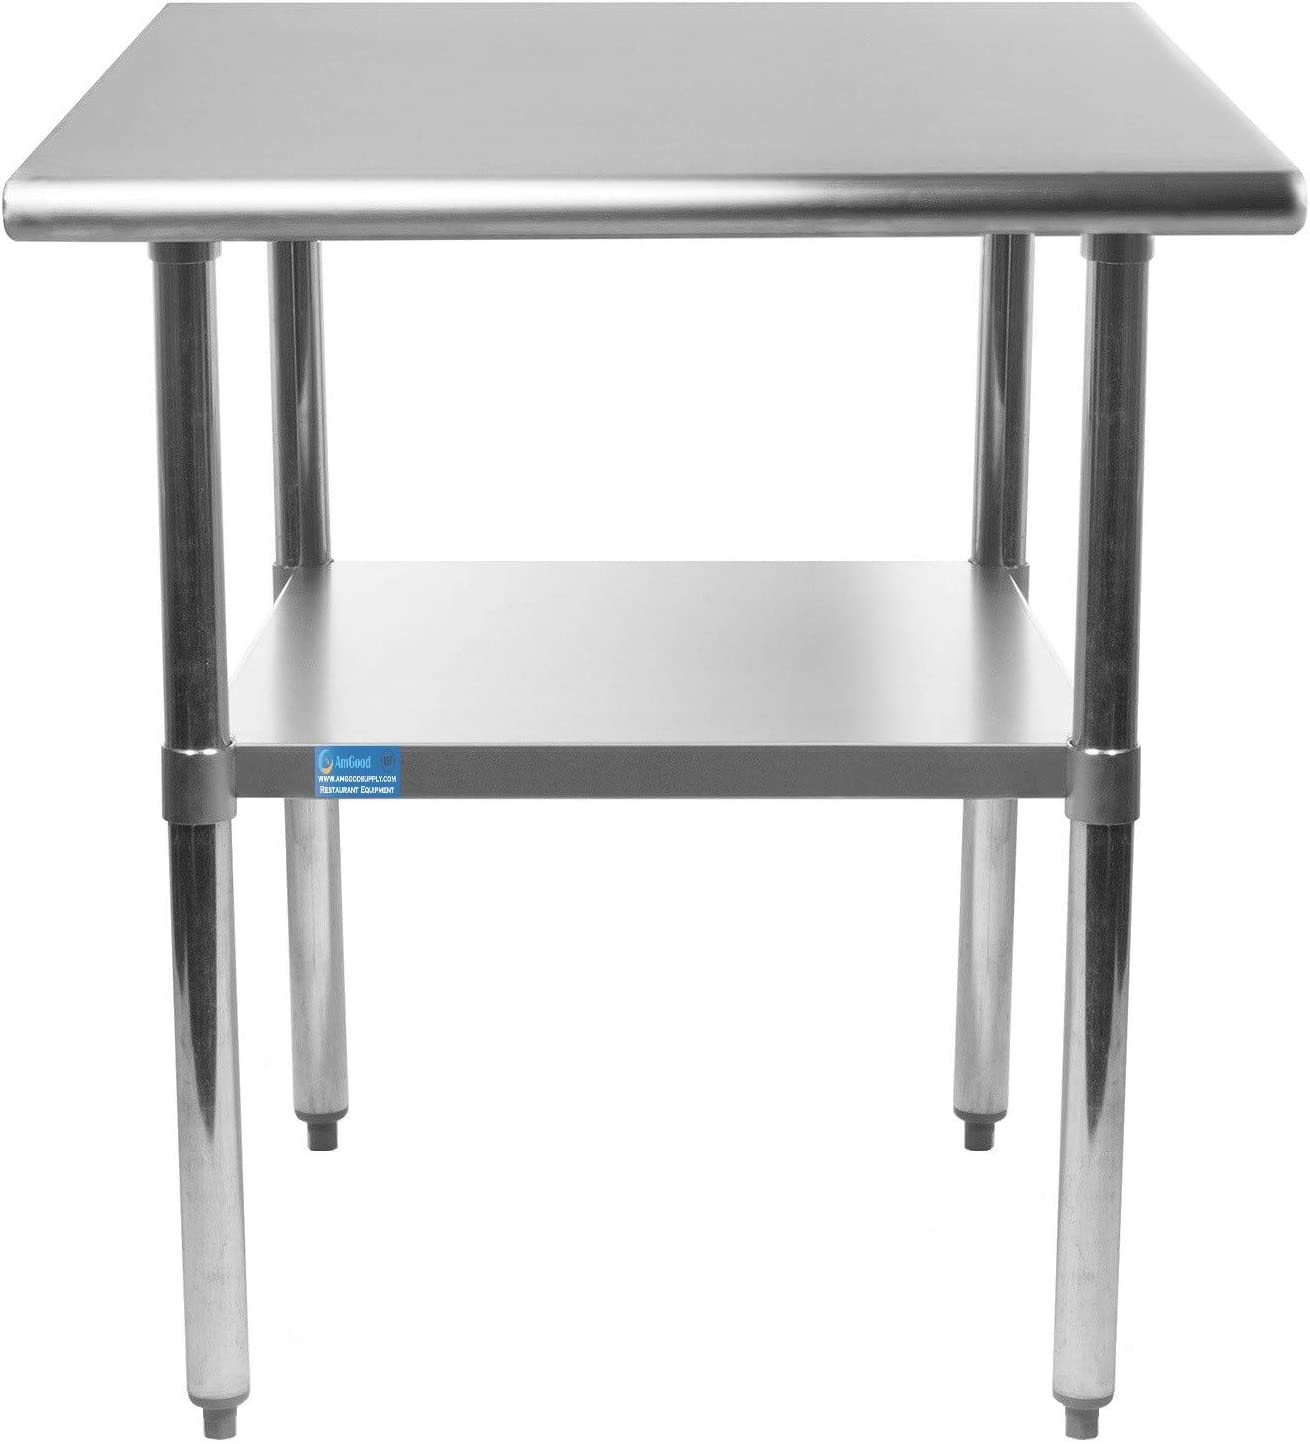 "AmGood Stainless Steel Work Table Undershelf | Kitchen Island Food Prep | Laundry Garage Utility Bench | NSF Certified (24"" Long x 18"" Deep)"